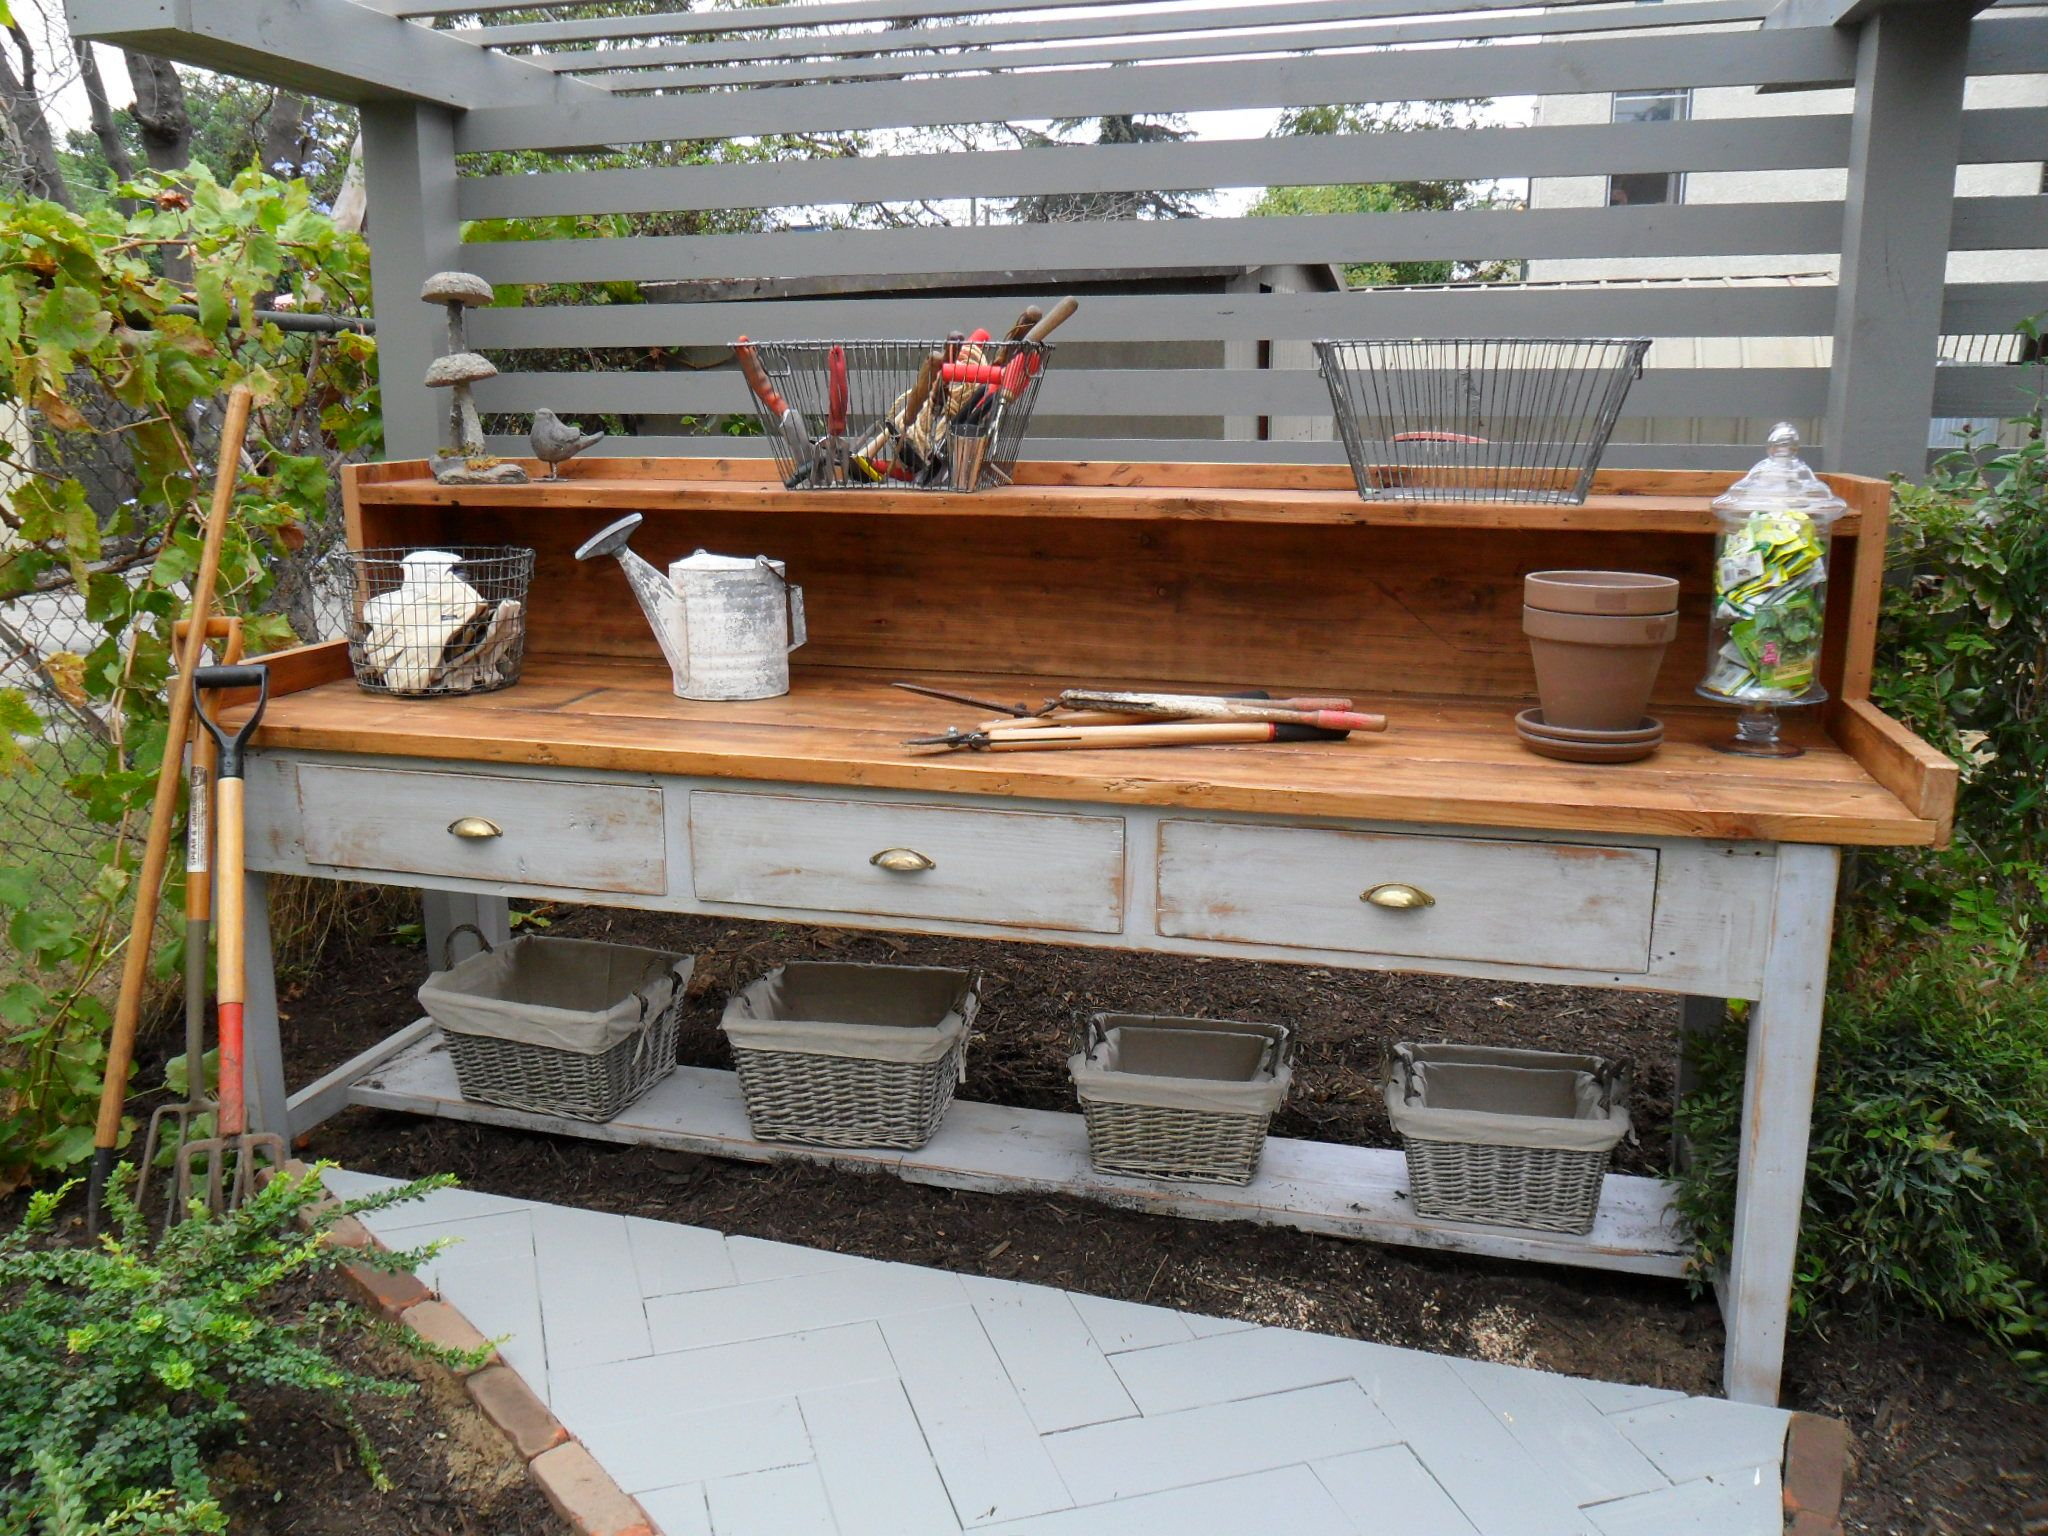 Garden workbench outdoorsy pins pinterest gardens for Garden potting bench ideas